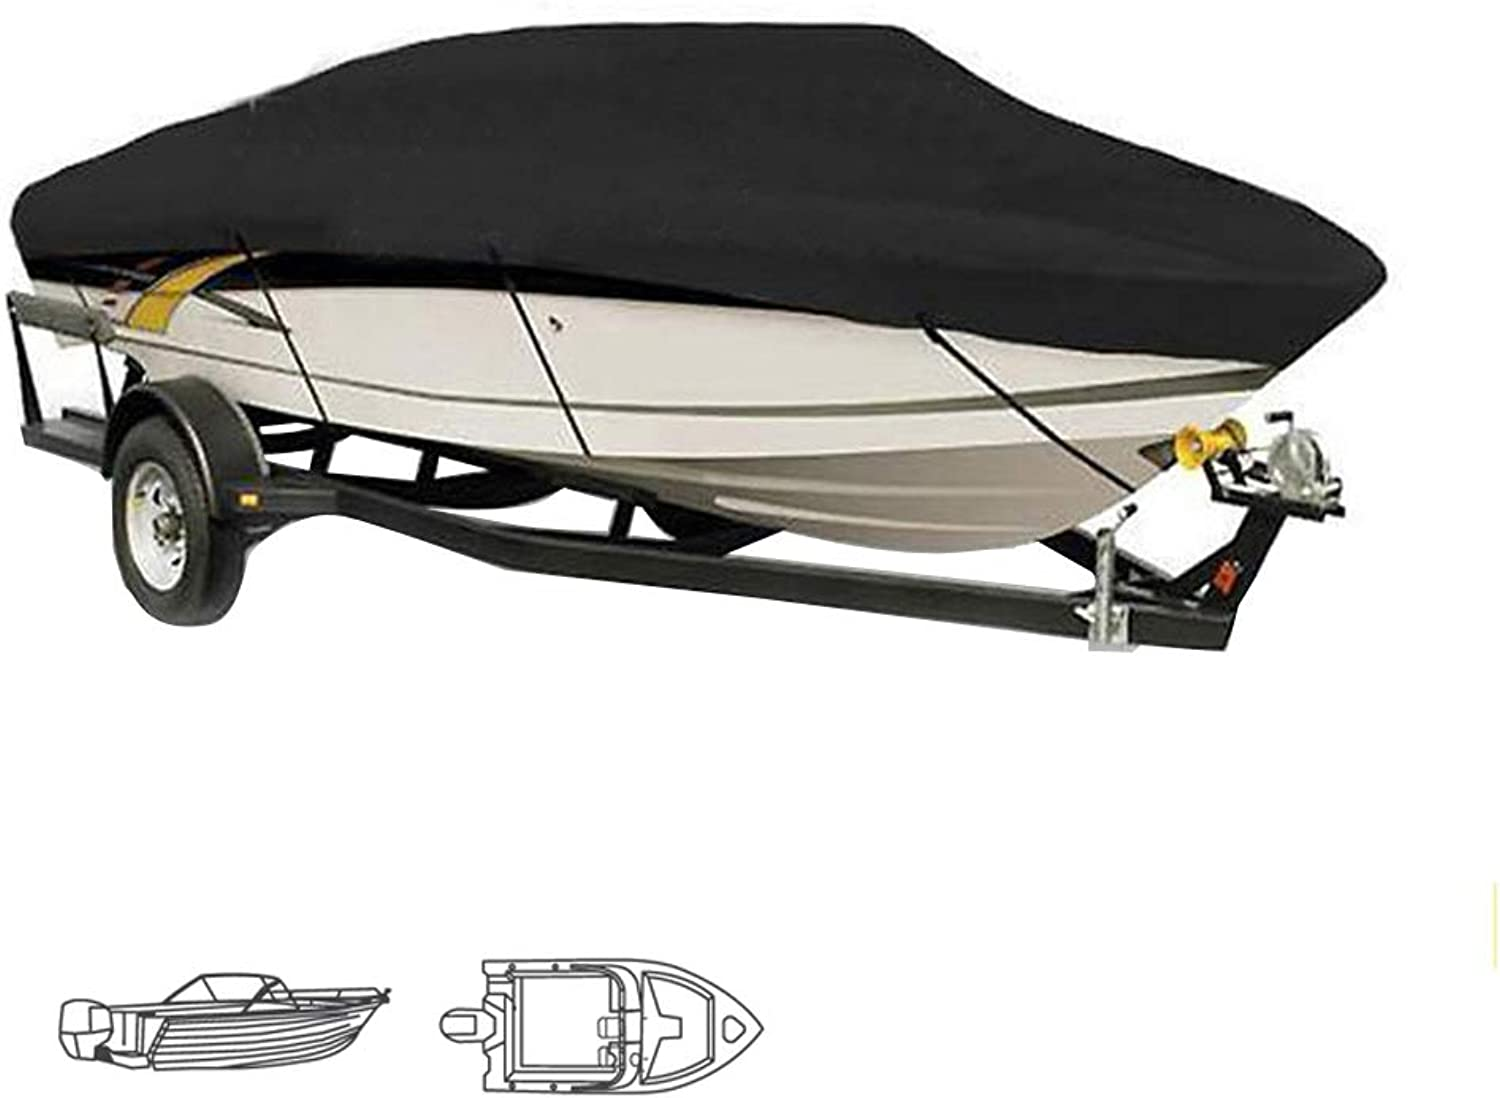 Heavy Duty Waterproof Speed Boat Cover All Weather Outdoor Predection Fits VHull,TriHull,Fishing Boats,Size 1113ft,1416ft,1719ft,2022ft